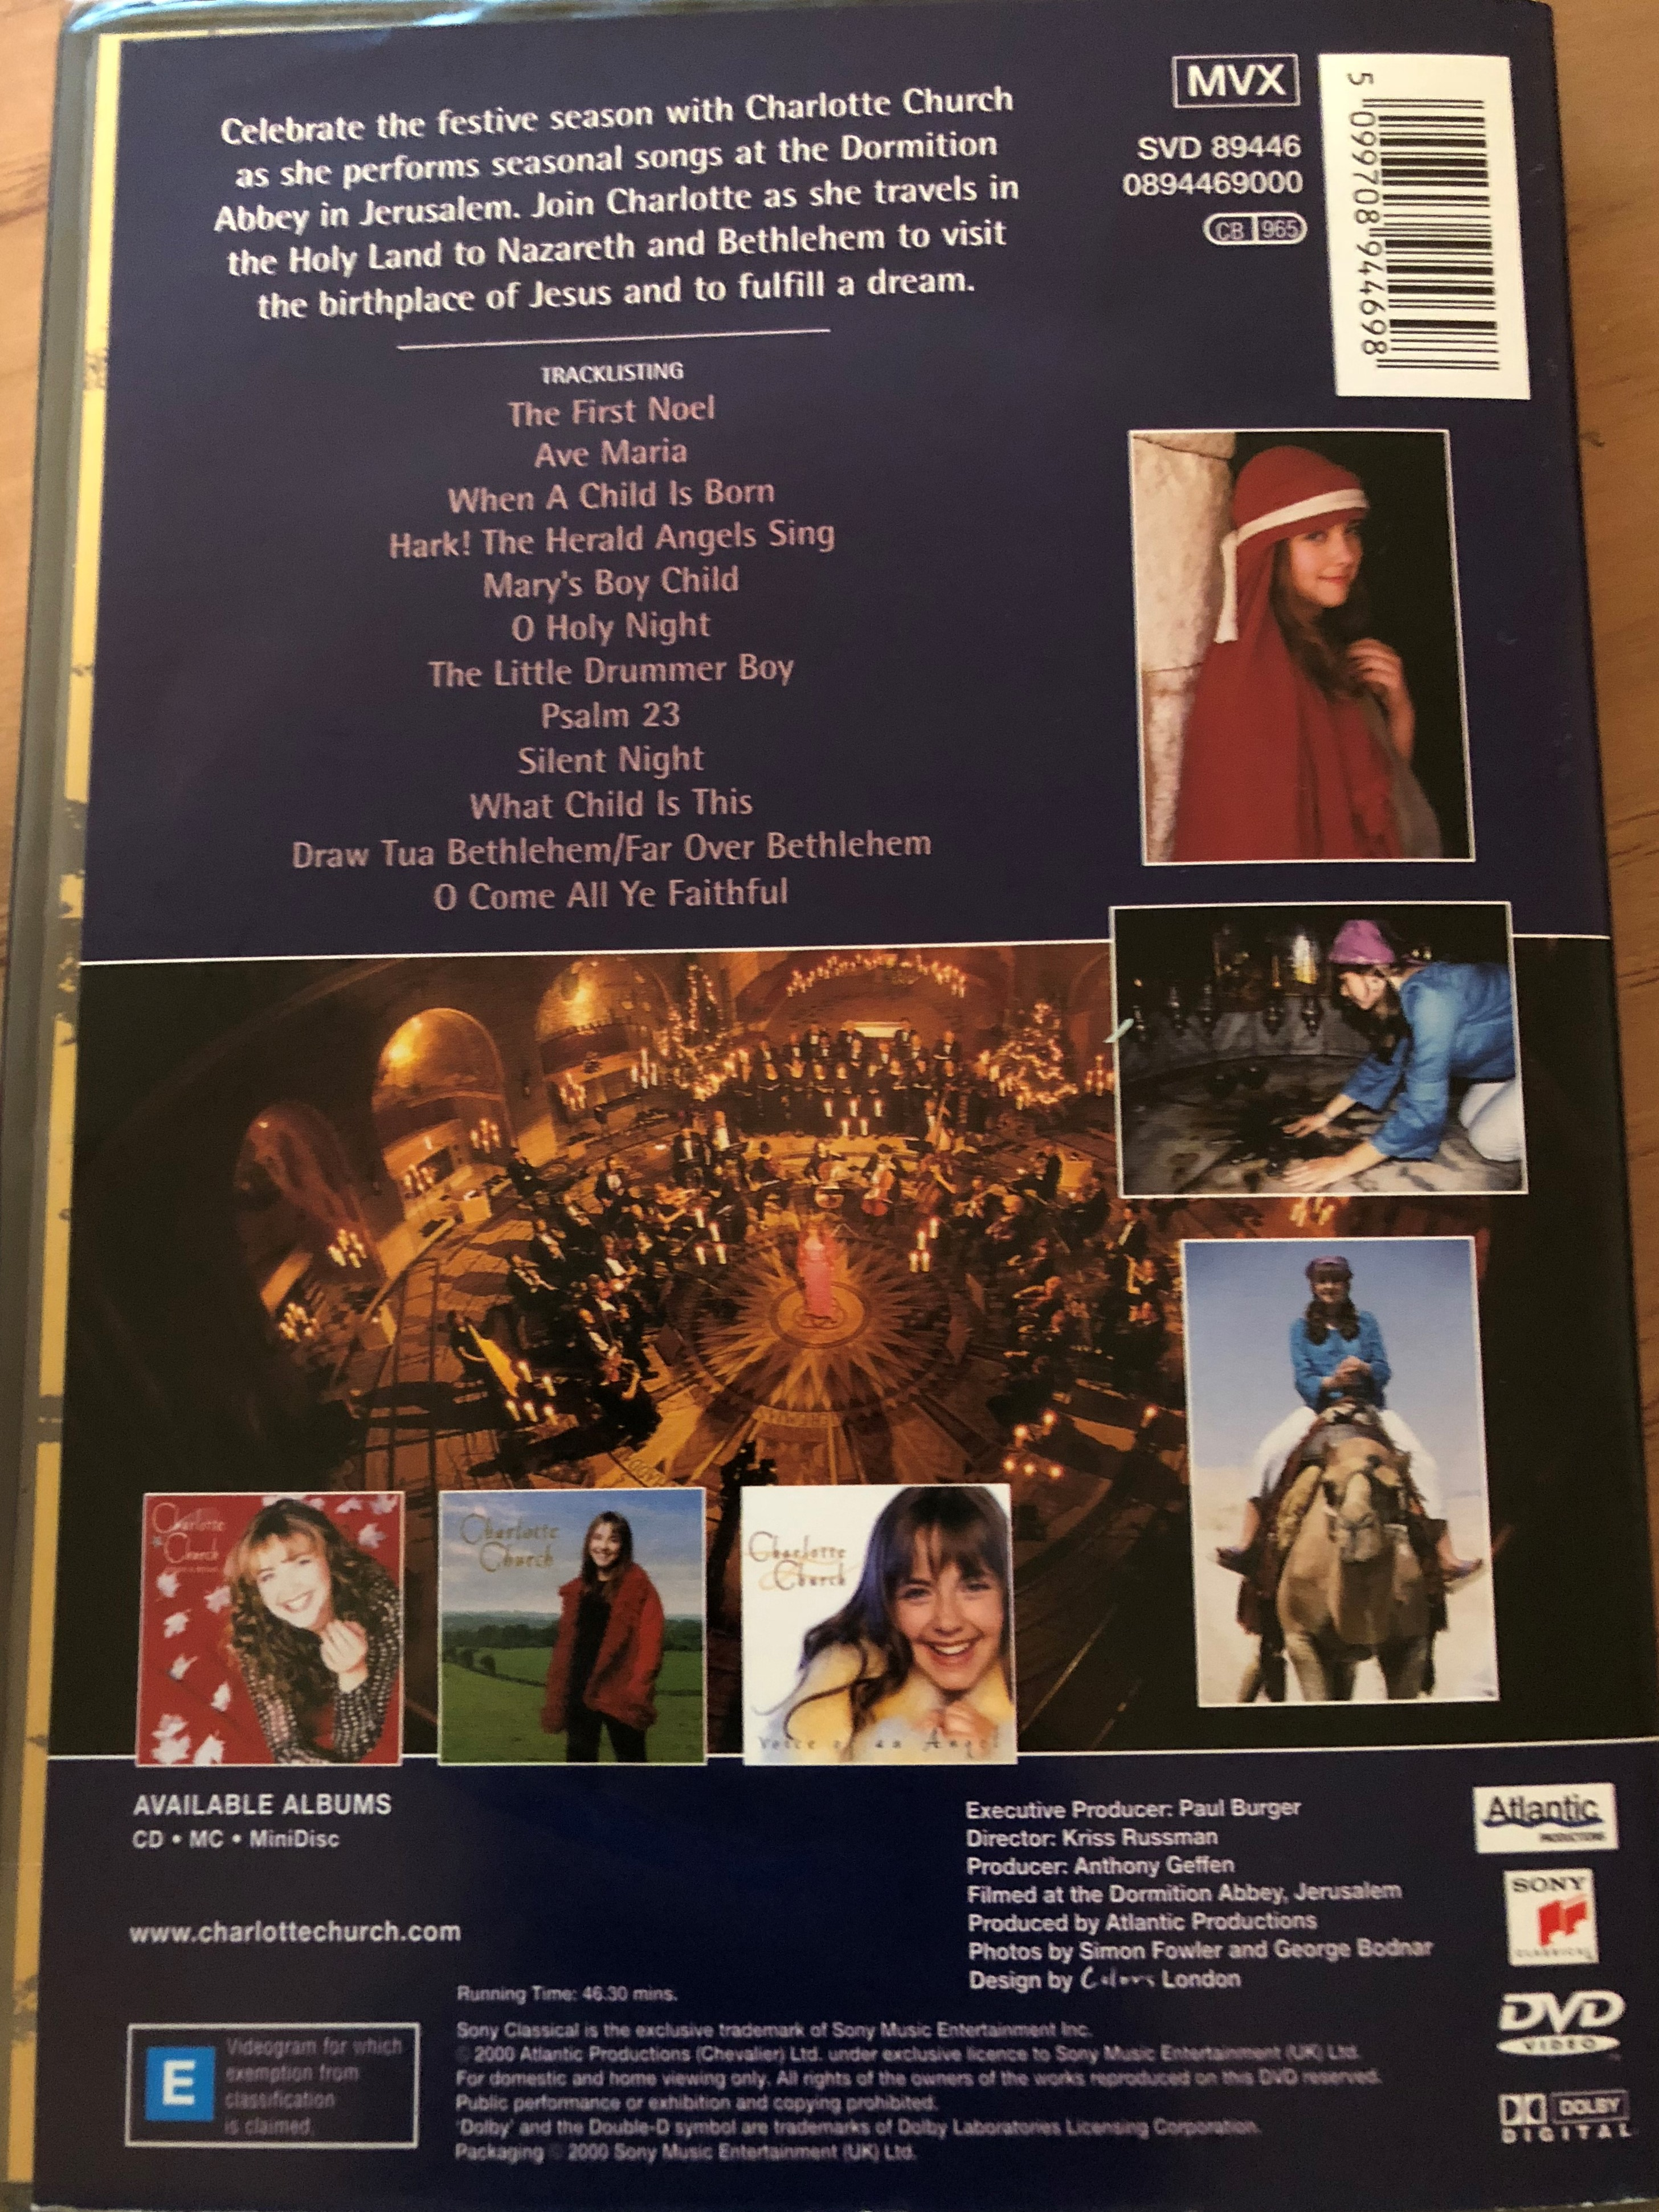 dream-a-dream-dvd-2000-charlotte-church-in-the-holy-land-christmas-songs-directed-by-kriss-russman-filmed-at-the-dormition-abbey-jerusalem-2-.jpg